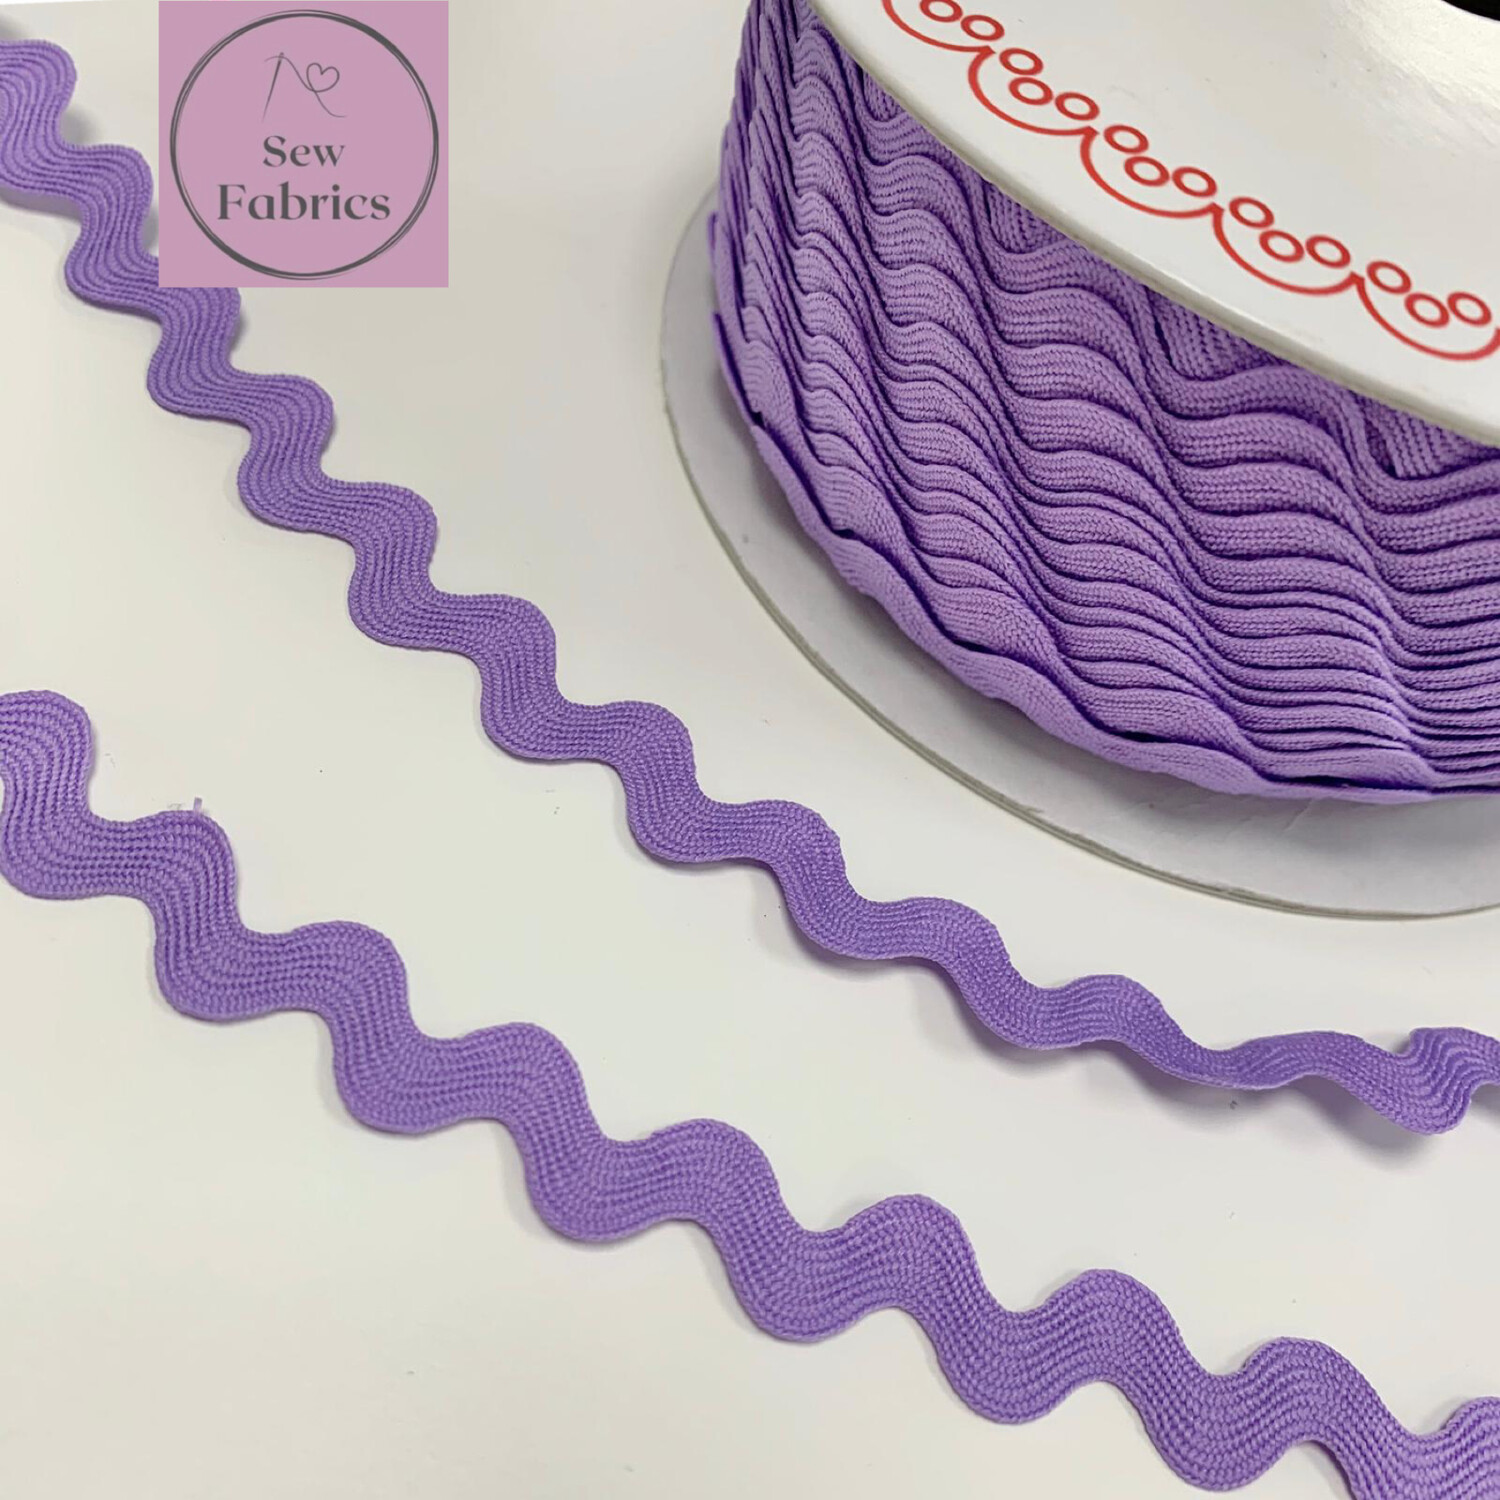 Bertie's Bows Lilac Purple 13mm Large Ric Rac Trim, Edging, Fringe, Braid, Craft